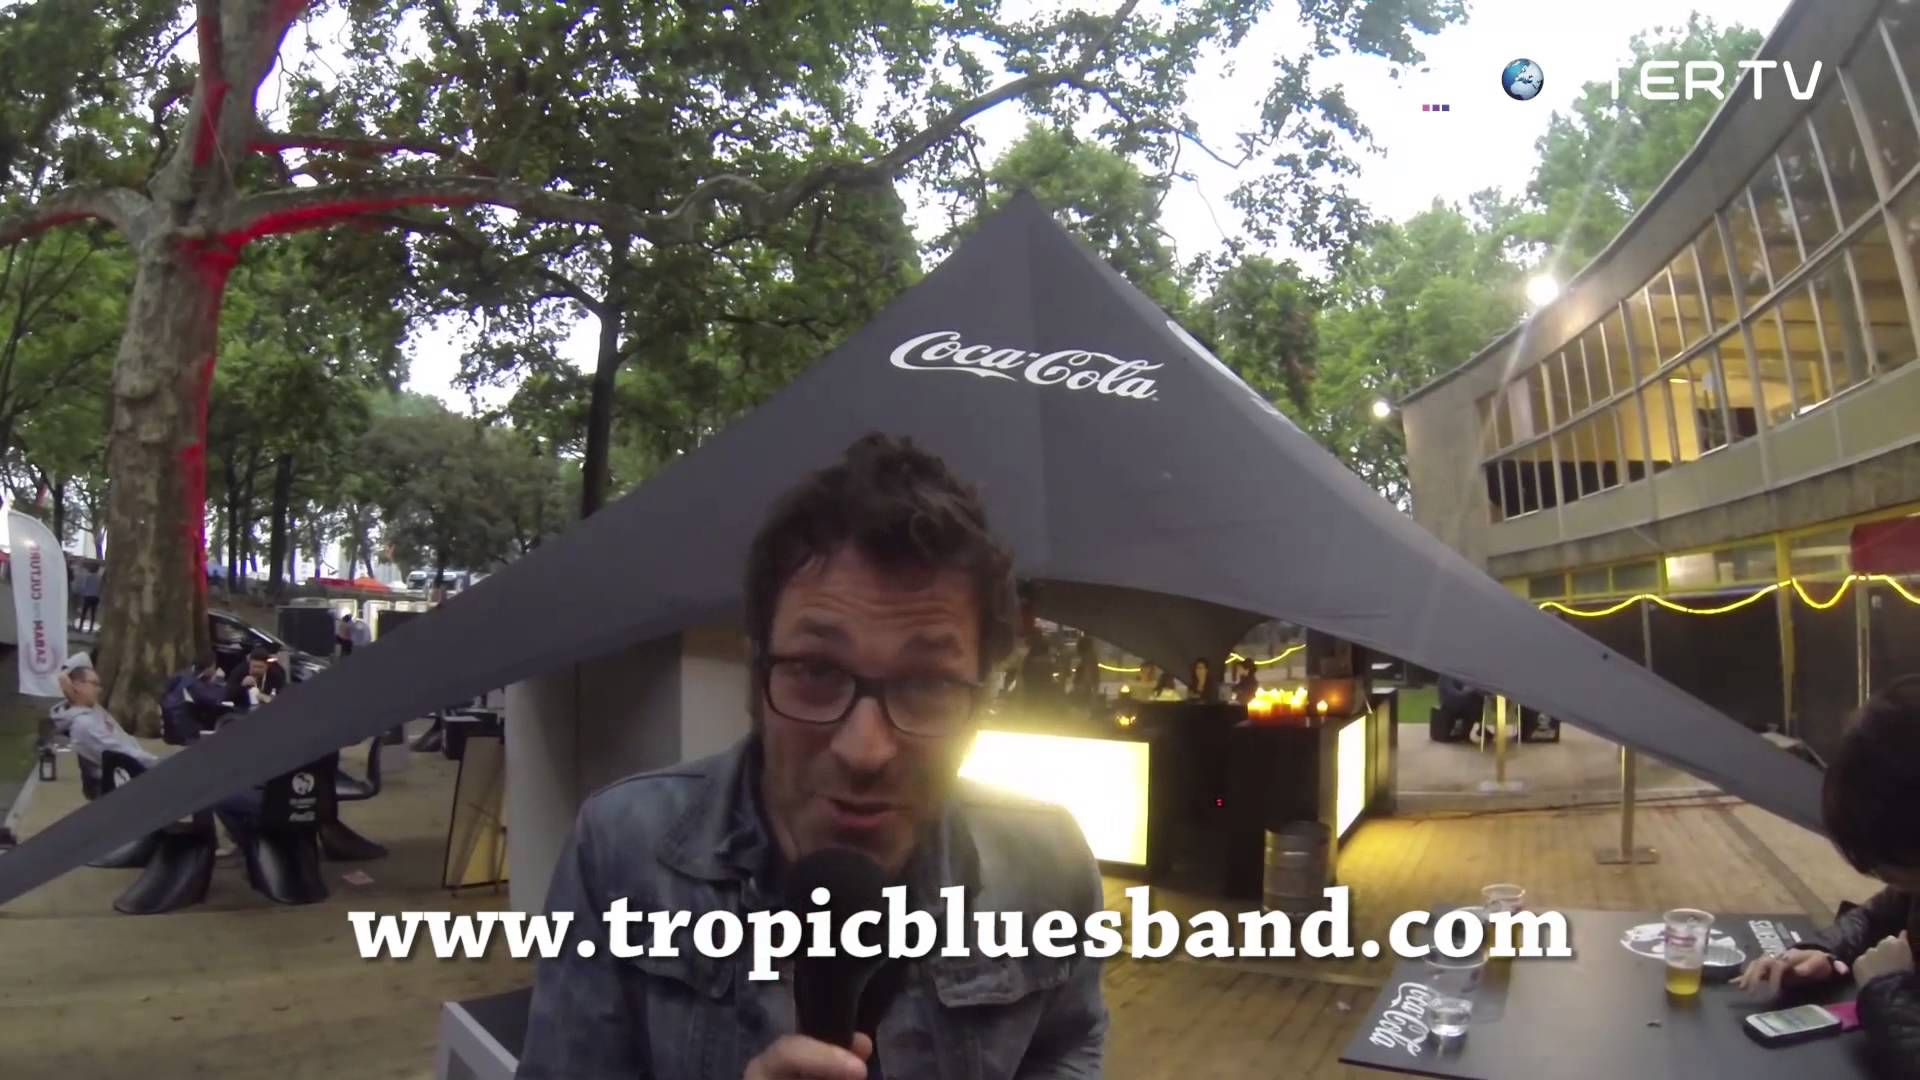 The Experimental Tropic Blues Band message pour Reporter TV